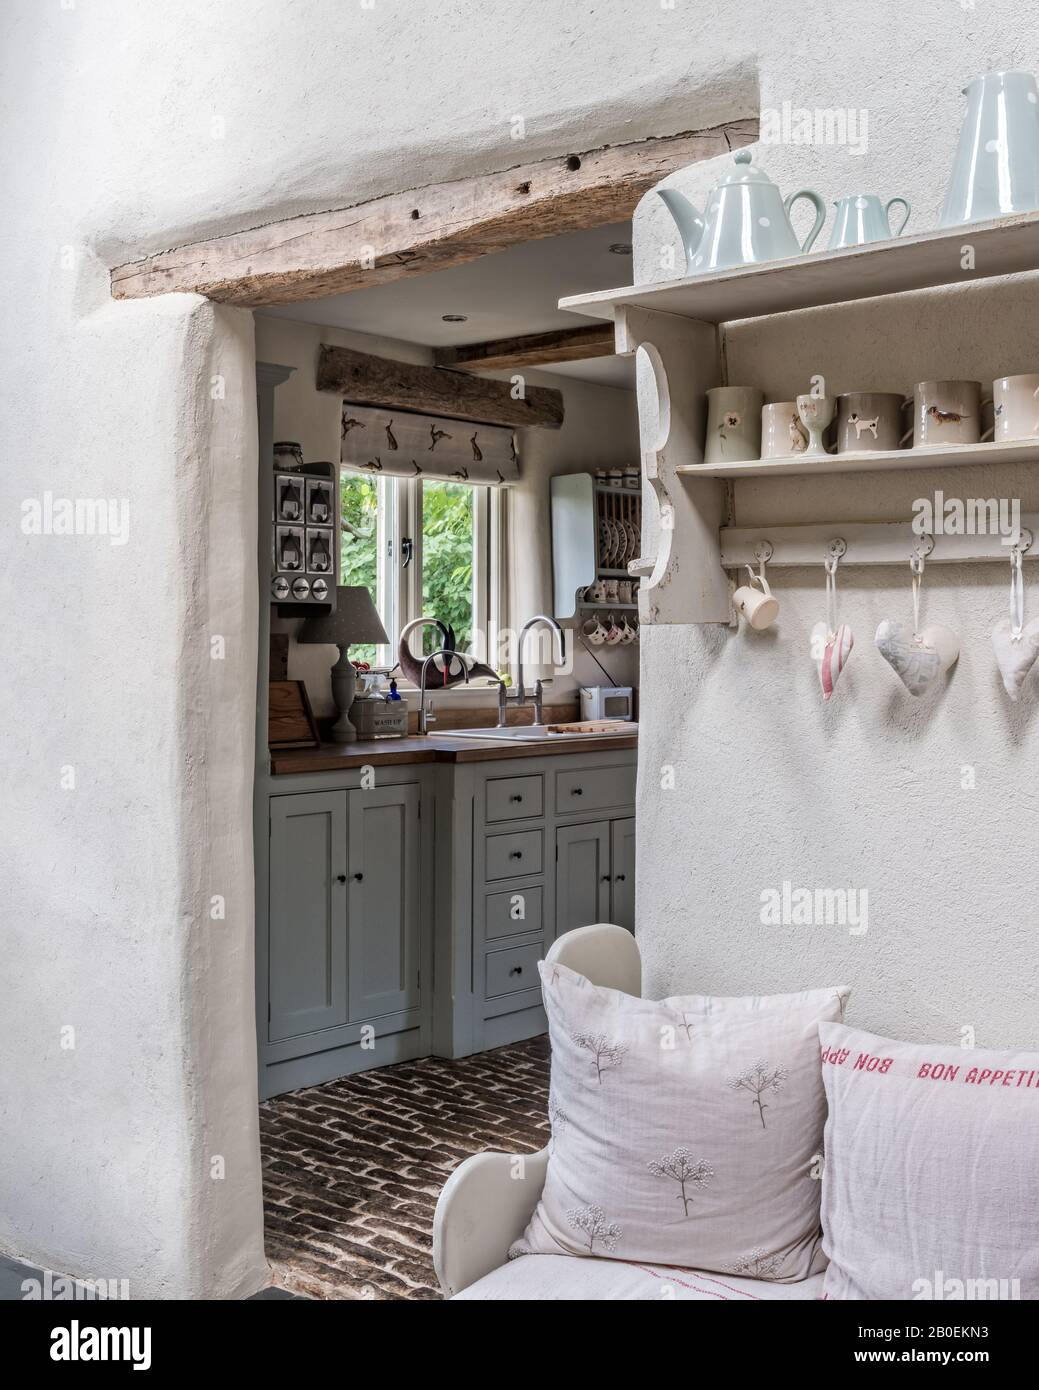 Hearts Hang On Wall Mounted Shelf With View To Kitchen Stock Photo Alamy